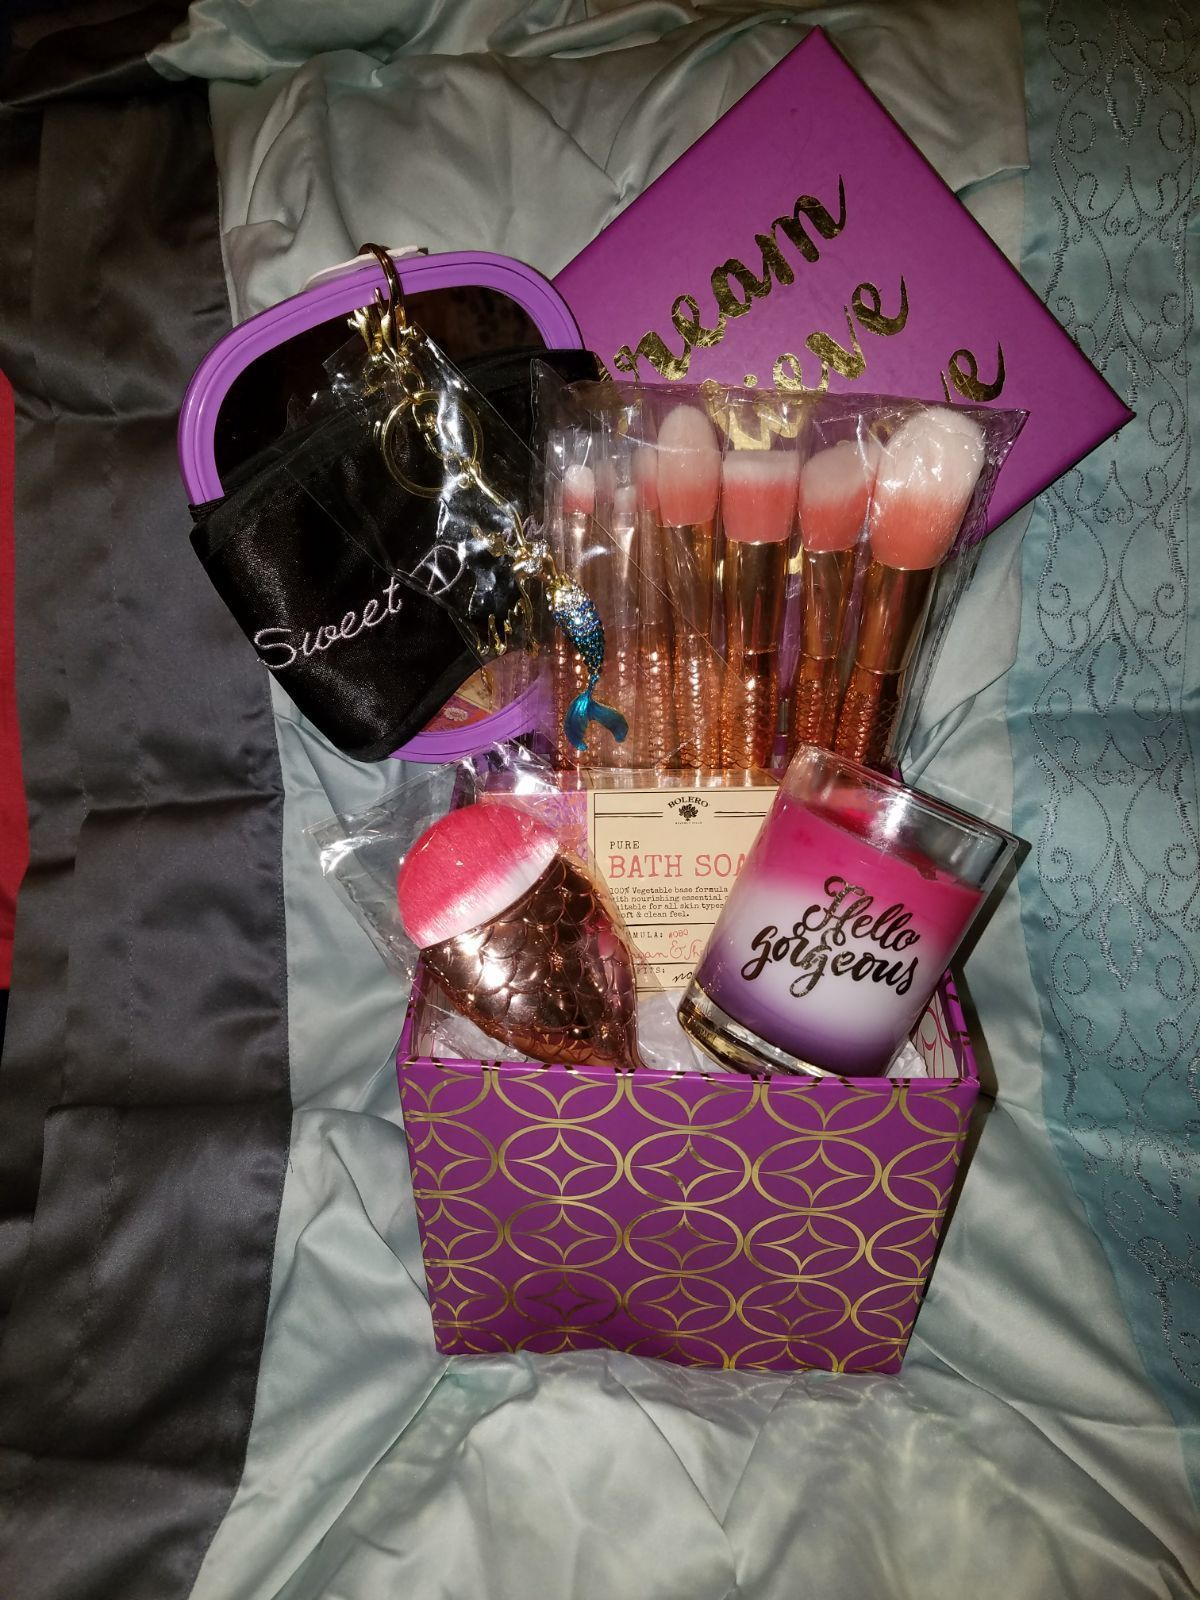 Pin By 𝕞𝕒𝕣𝕤 𝕖𝕝𝕪𝕤𝕖 On Gifts In 2020 Makeup Gifts Basket Birthday Gift Baskets Friend Birthday Gifts